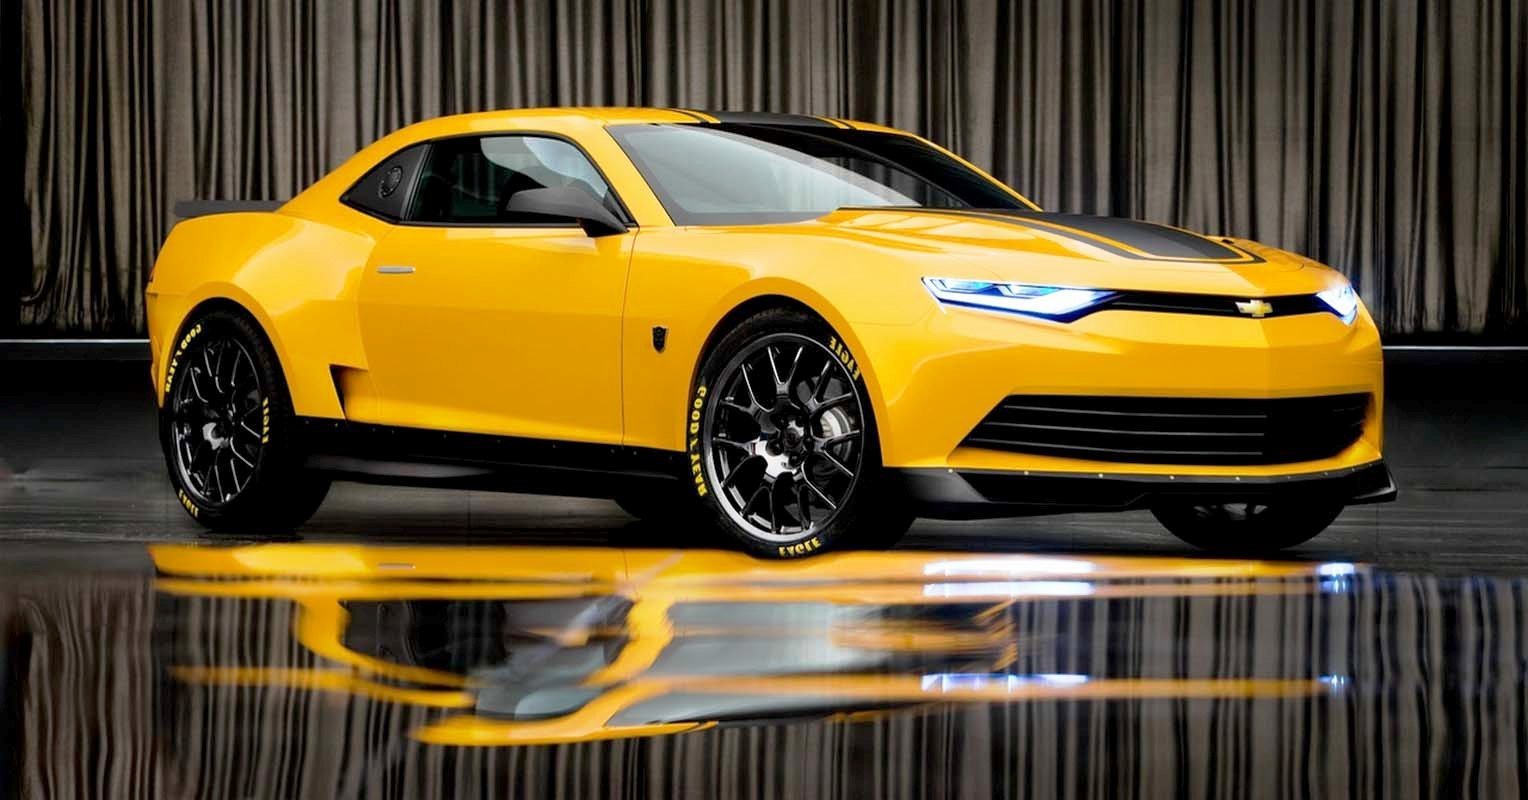 Prediction Bumblebee Chevrolet Camaro Gone After